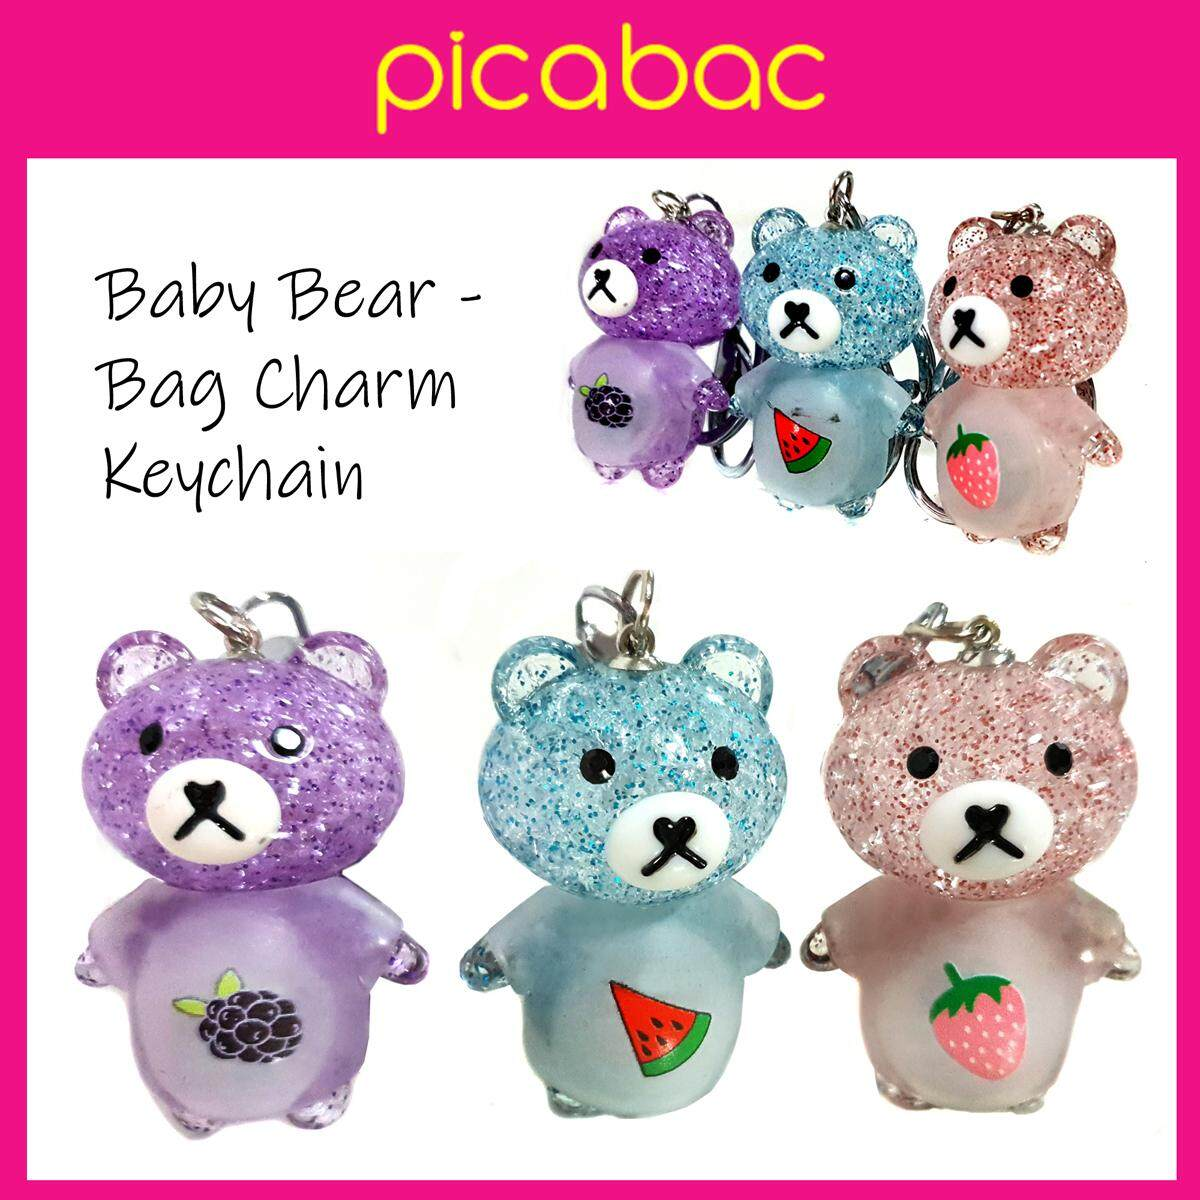 Picabac Cute Baby Bear Bag Charm Keychain with light PACBC-BEAR01